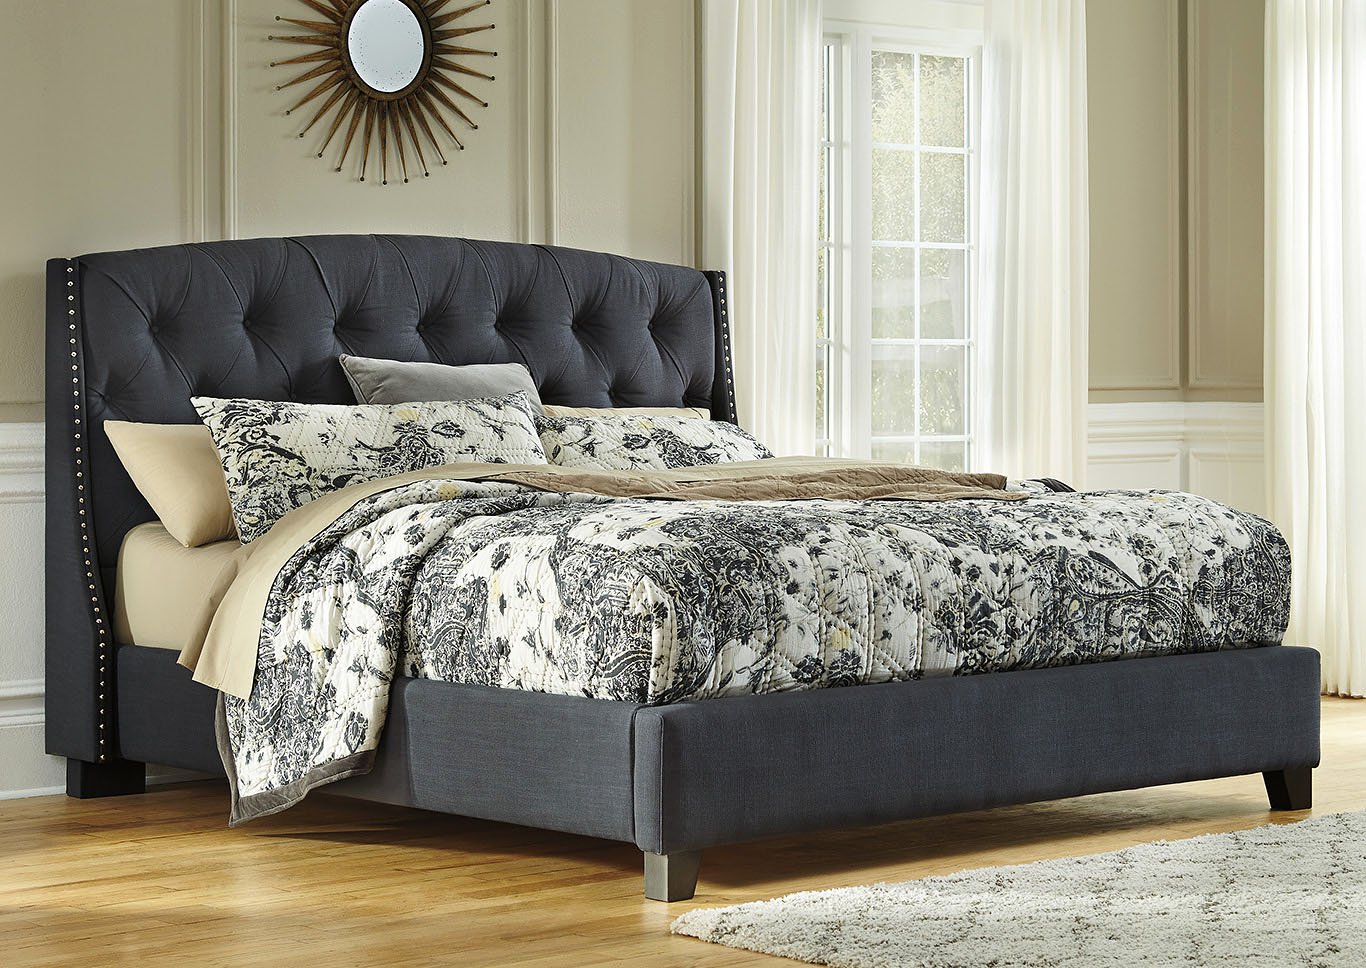 Kasidon Dark Gray California King Upholstered Bed,Signature Design By Ashley